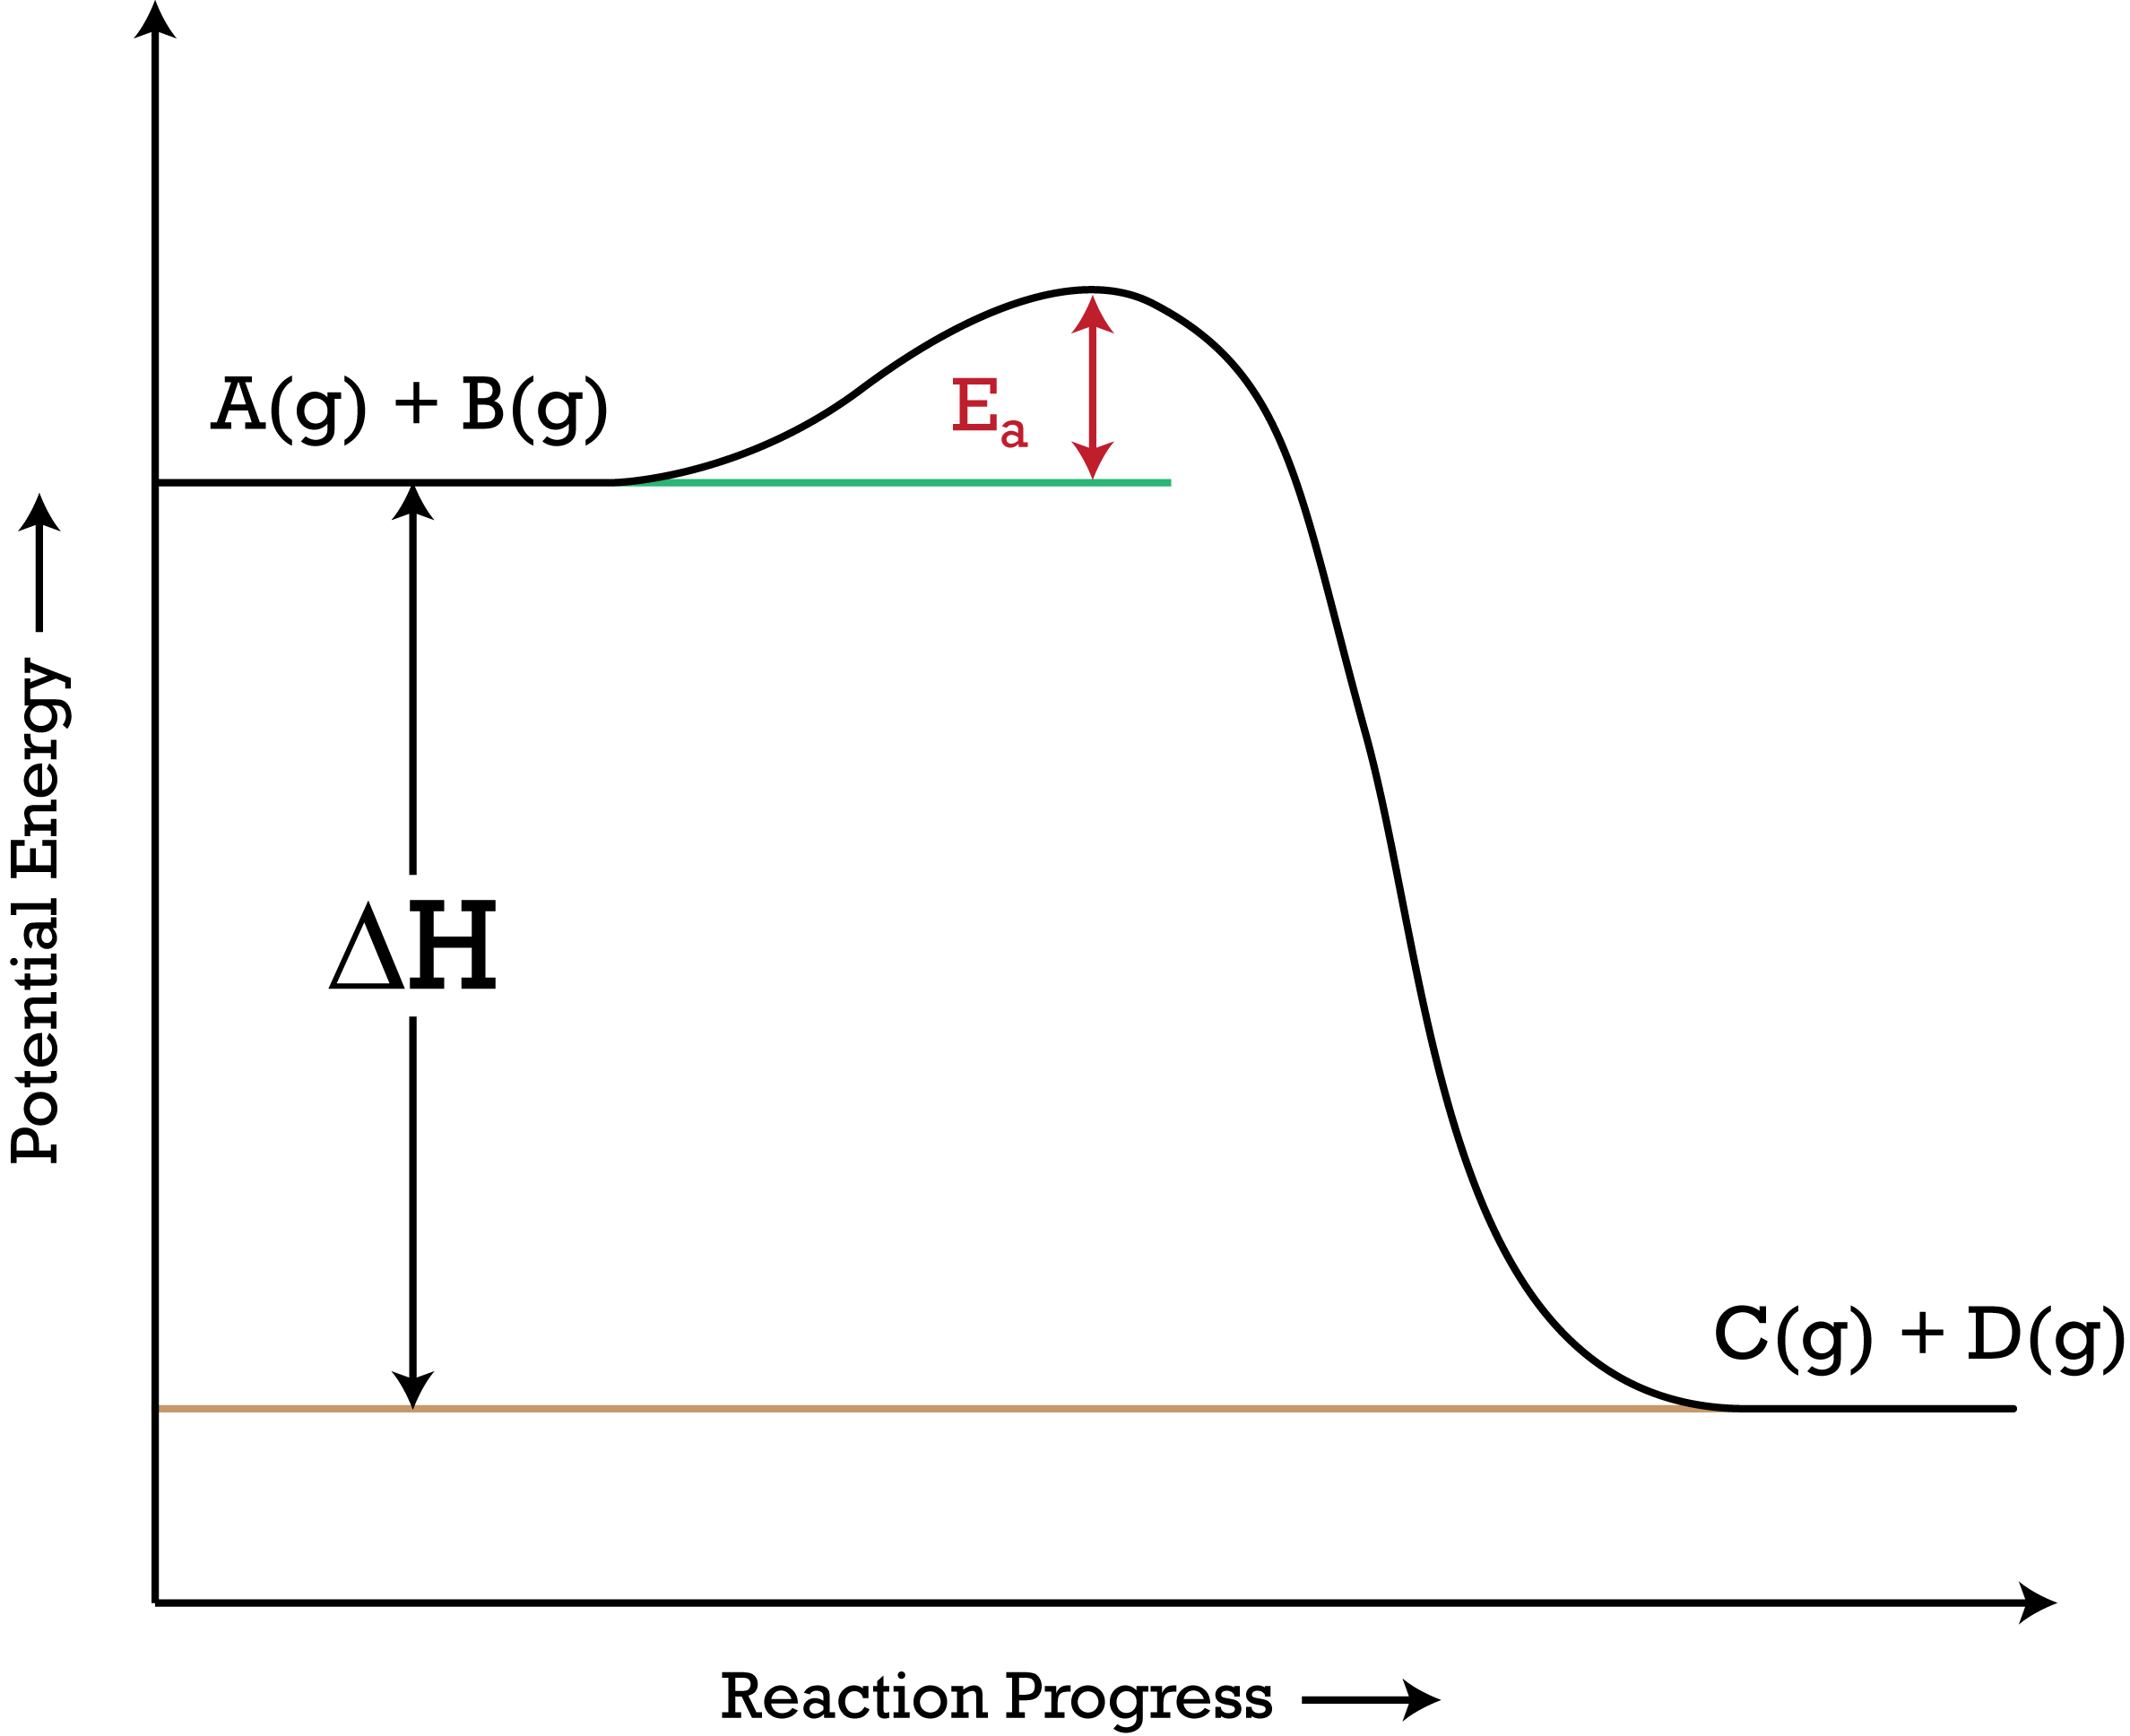 potential energy diagram activation orbital for arsenic the effects of applying stress to reactions at equilibrium